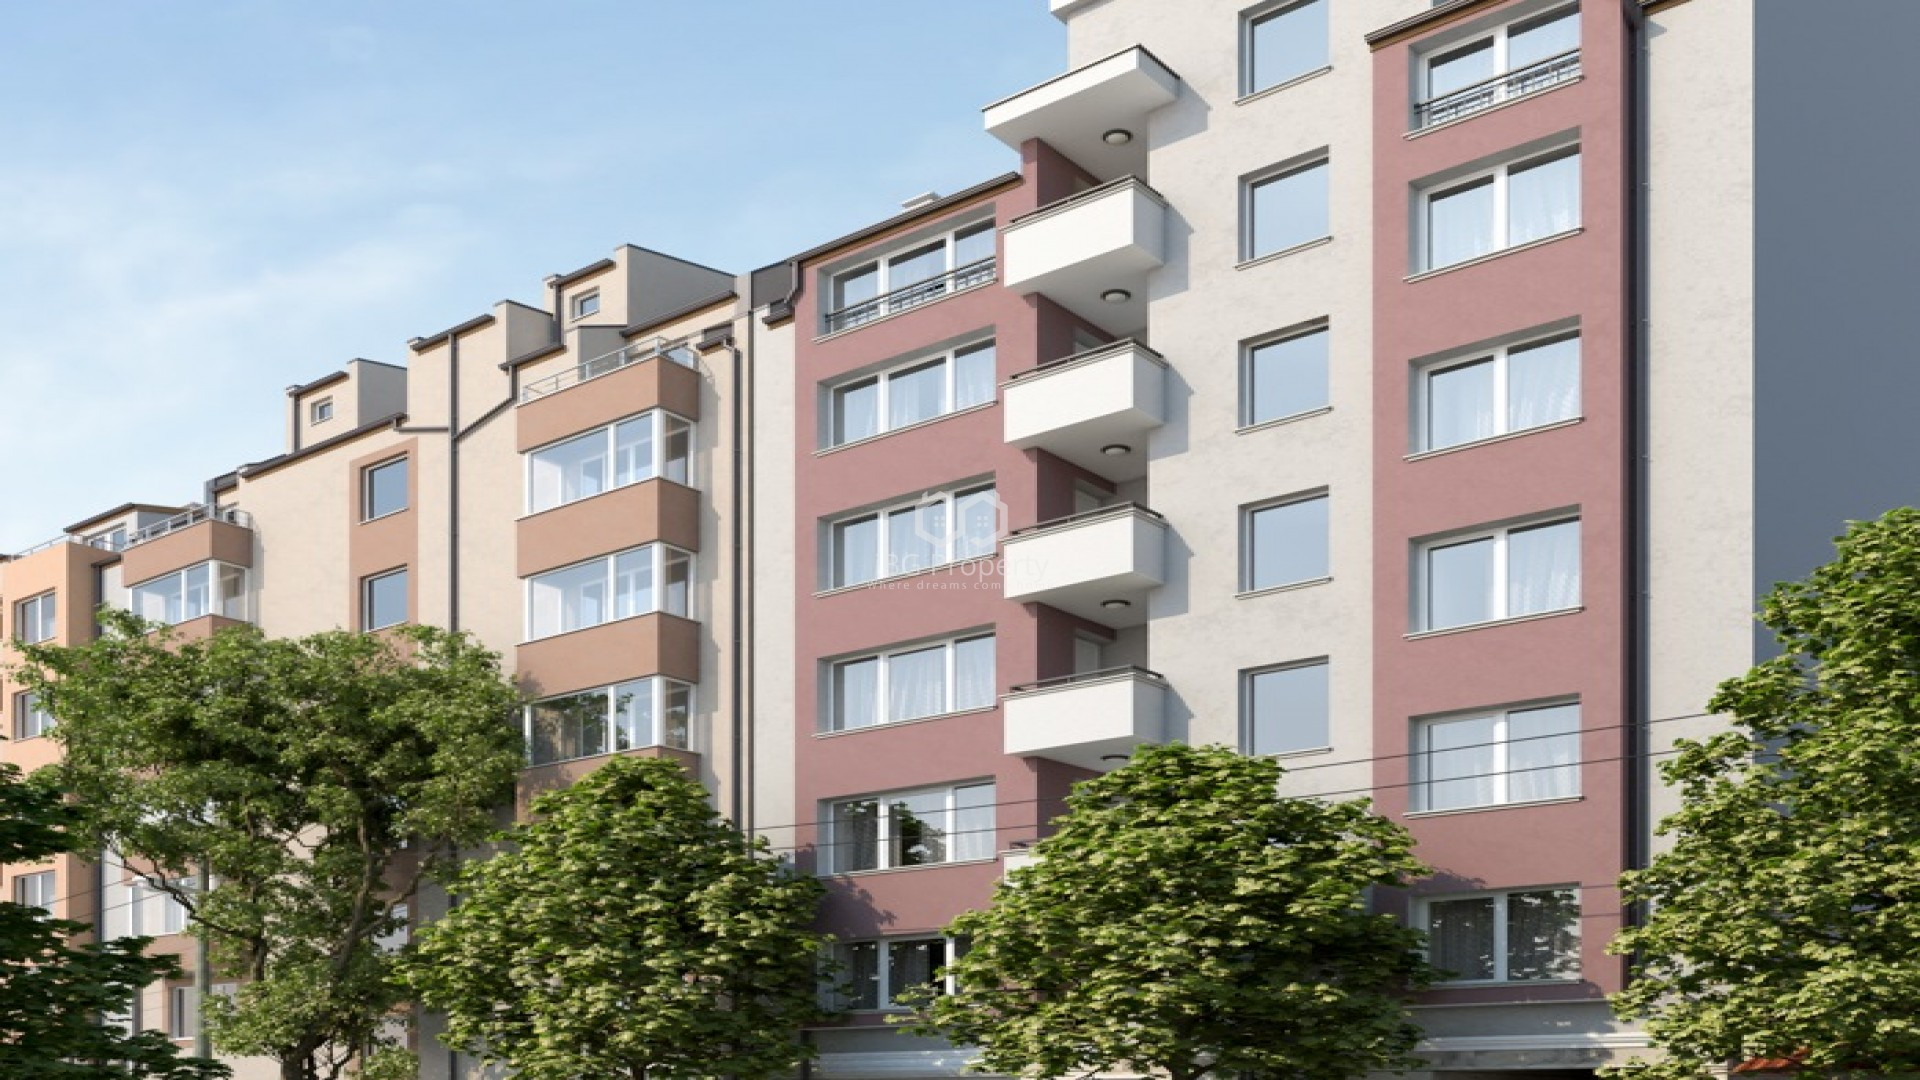 Two bedroom apartment Kolhozen pazar Varna 84 m2